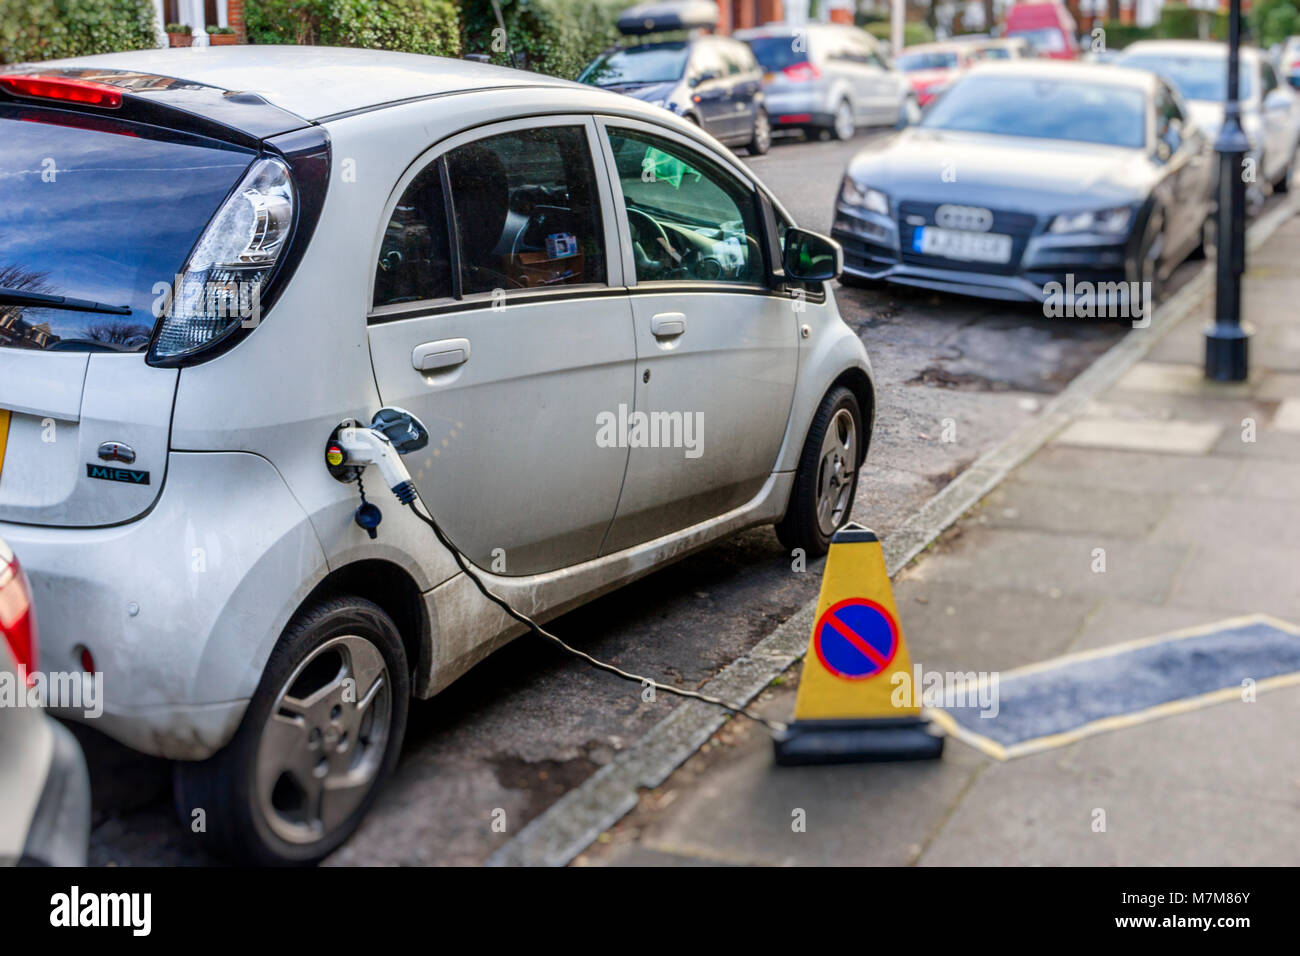 An electric-powered car being recharged at the kerbside in a residential street in North London, UK Stock Photo